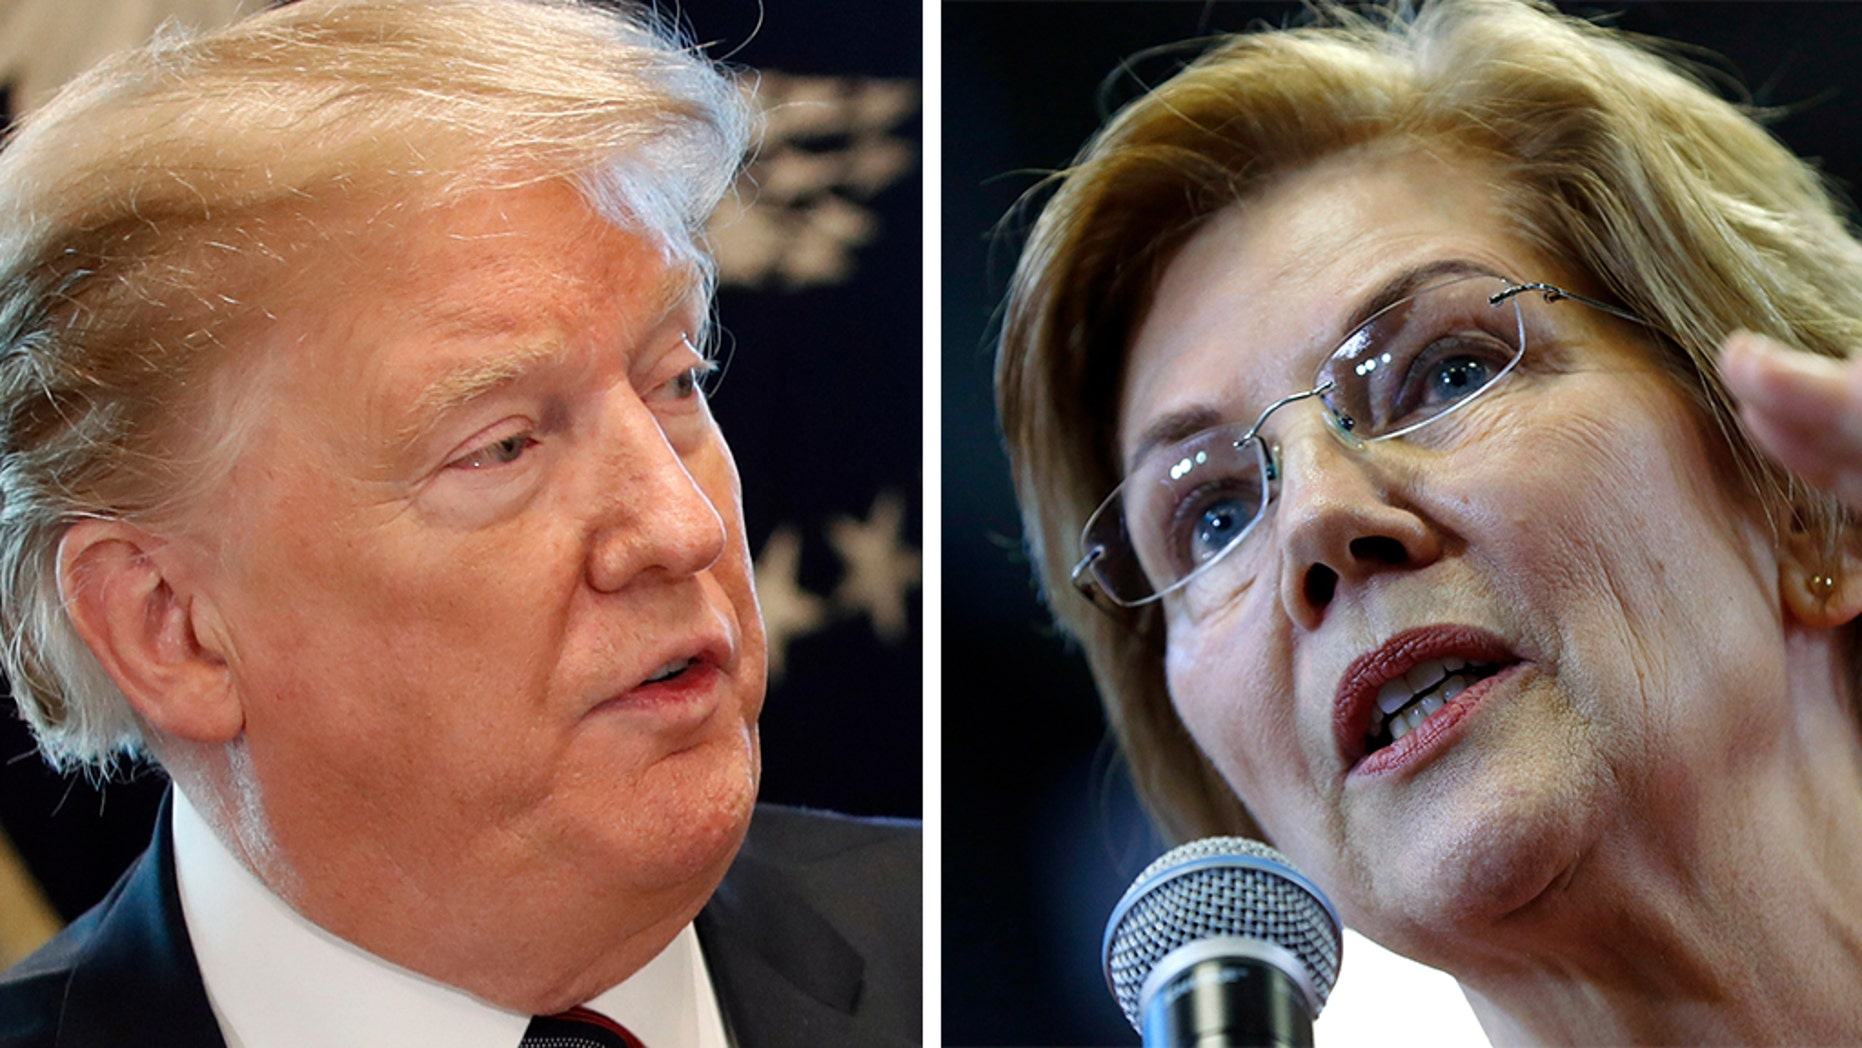 Donald Trump's Elizabeth Warren Video Comment Angers Twitter Users